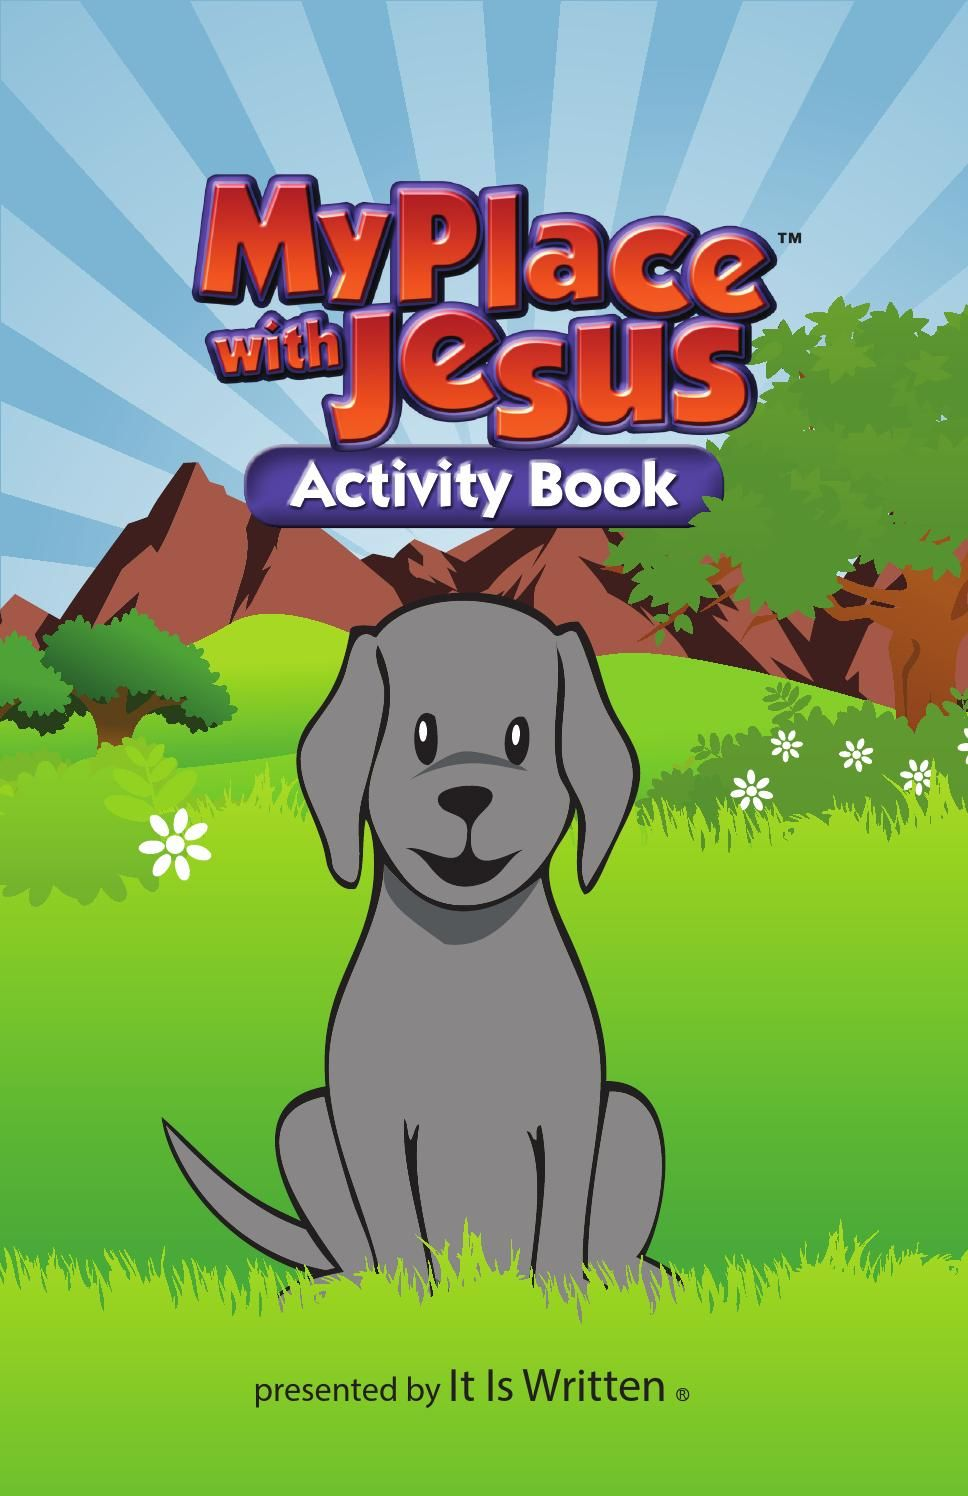 My Place With Jesus activity book | Bible